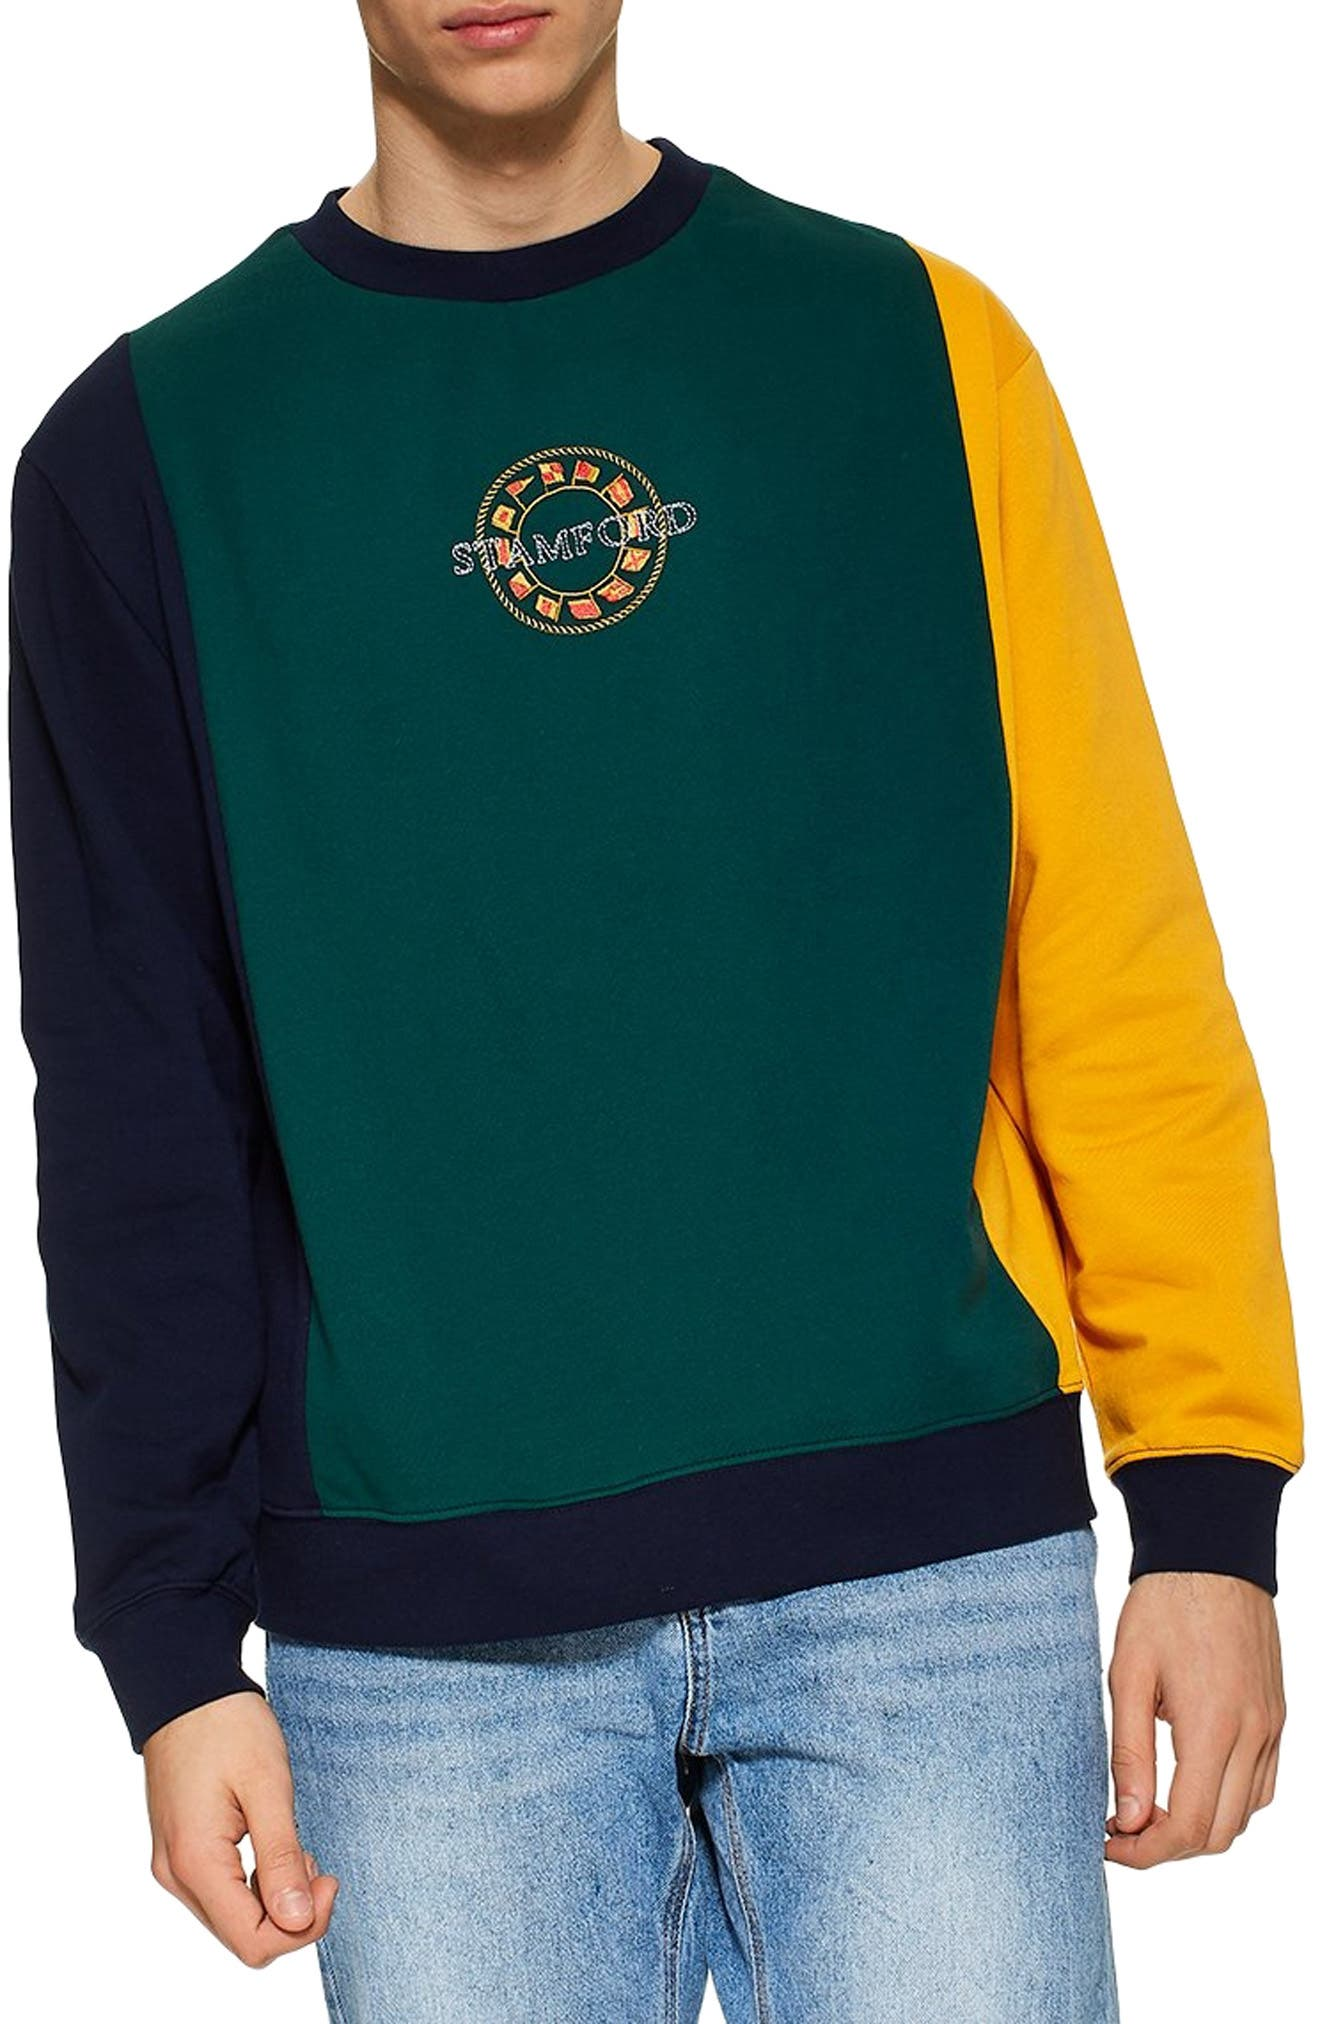 TOPMAN, Classic Fit Stamford Sweatshirt, Main thumbnail 1, color, GREEN MULTI